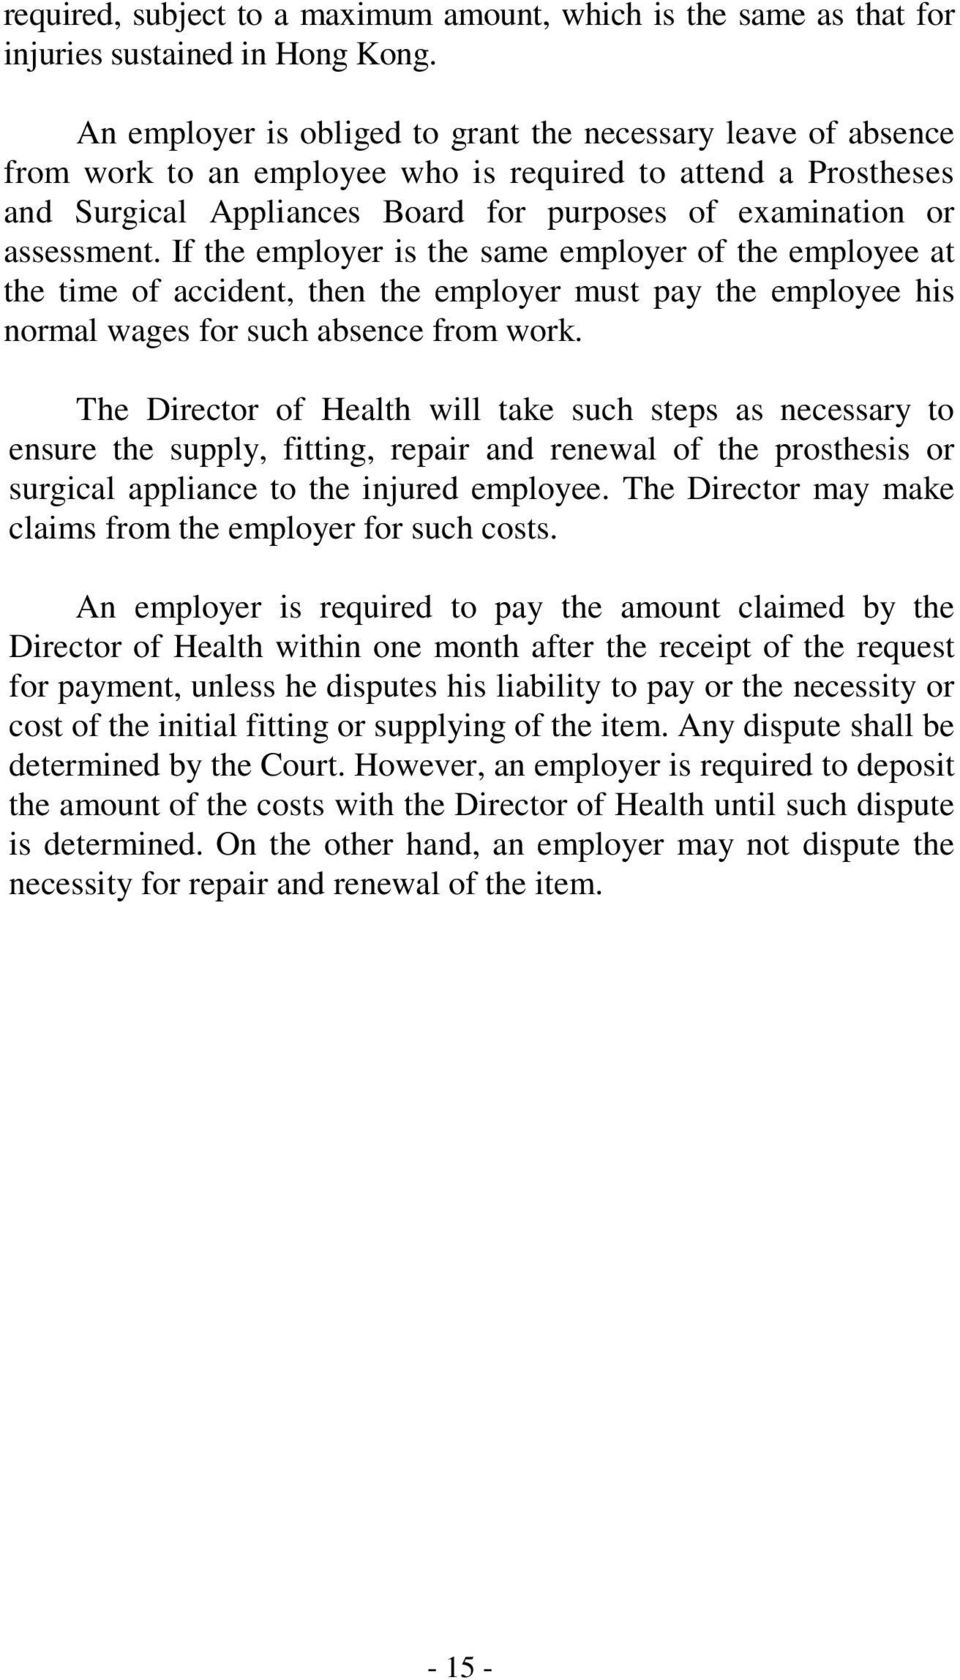 If the employer is the same employer of the employee at the time of accident, then the employer must pay the employee his normal wages for such absence from work.